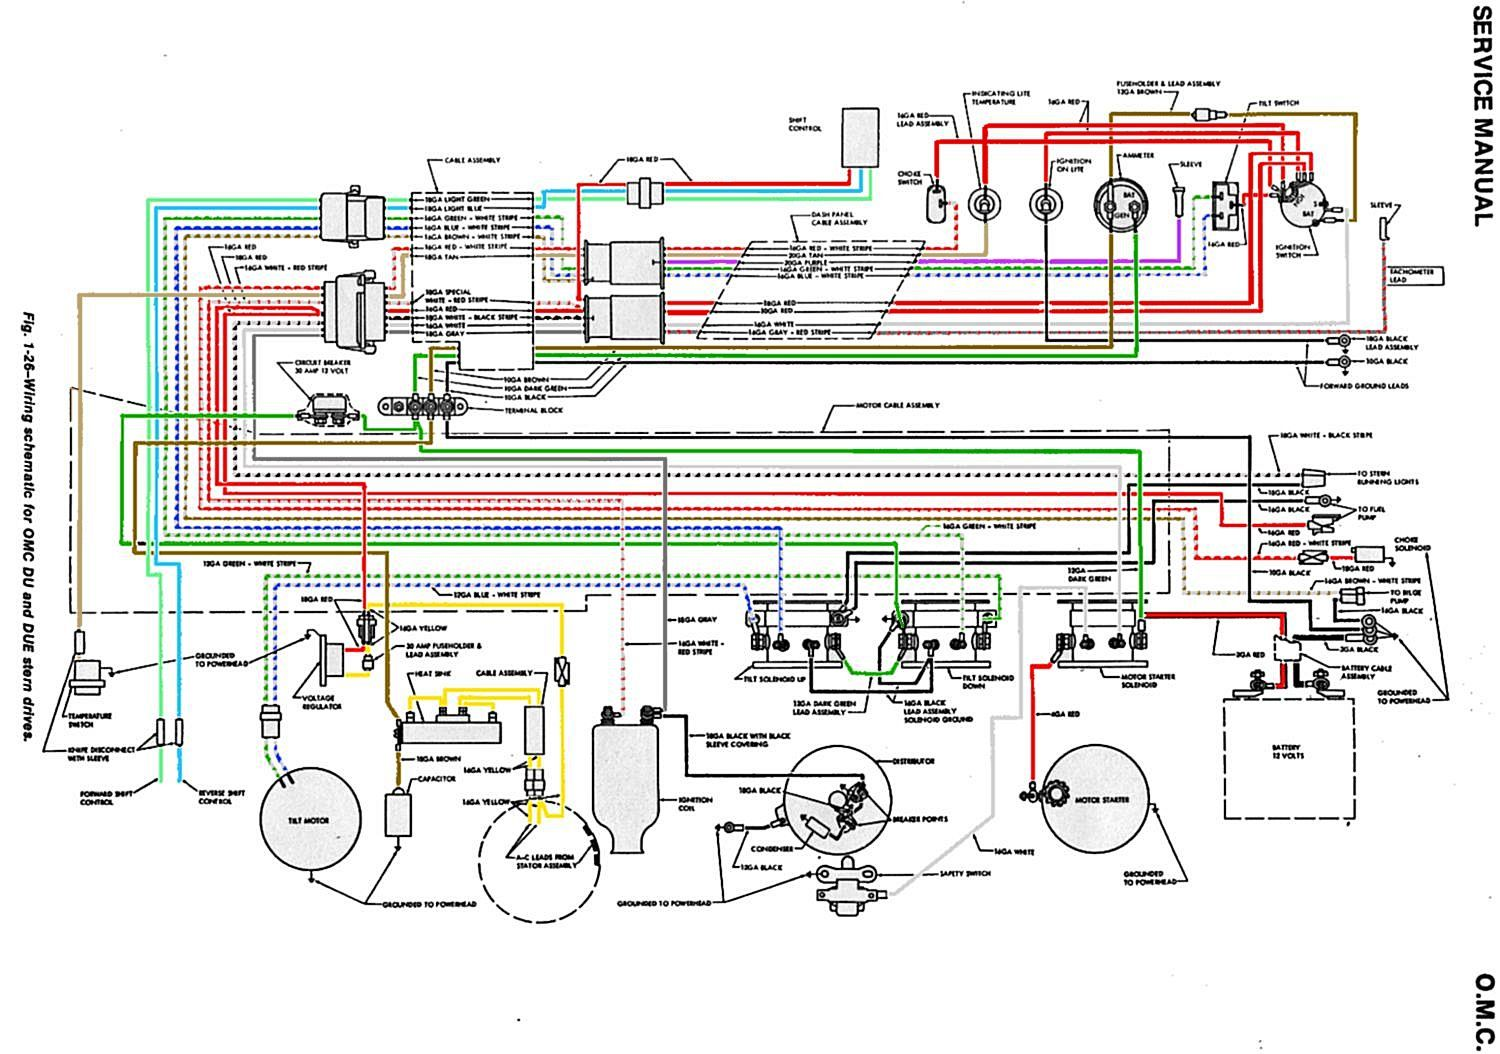 65 68_OMC_Wiring_Schematic omc boat technical info wiring diagram for a boat at mifinder.co